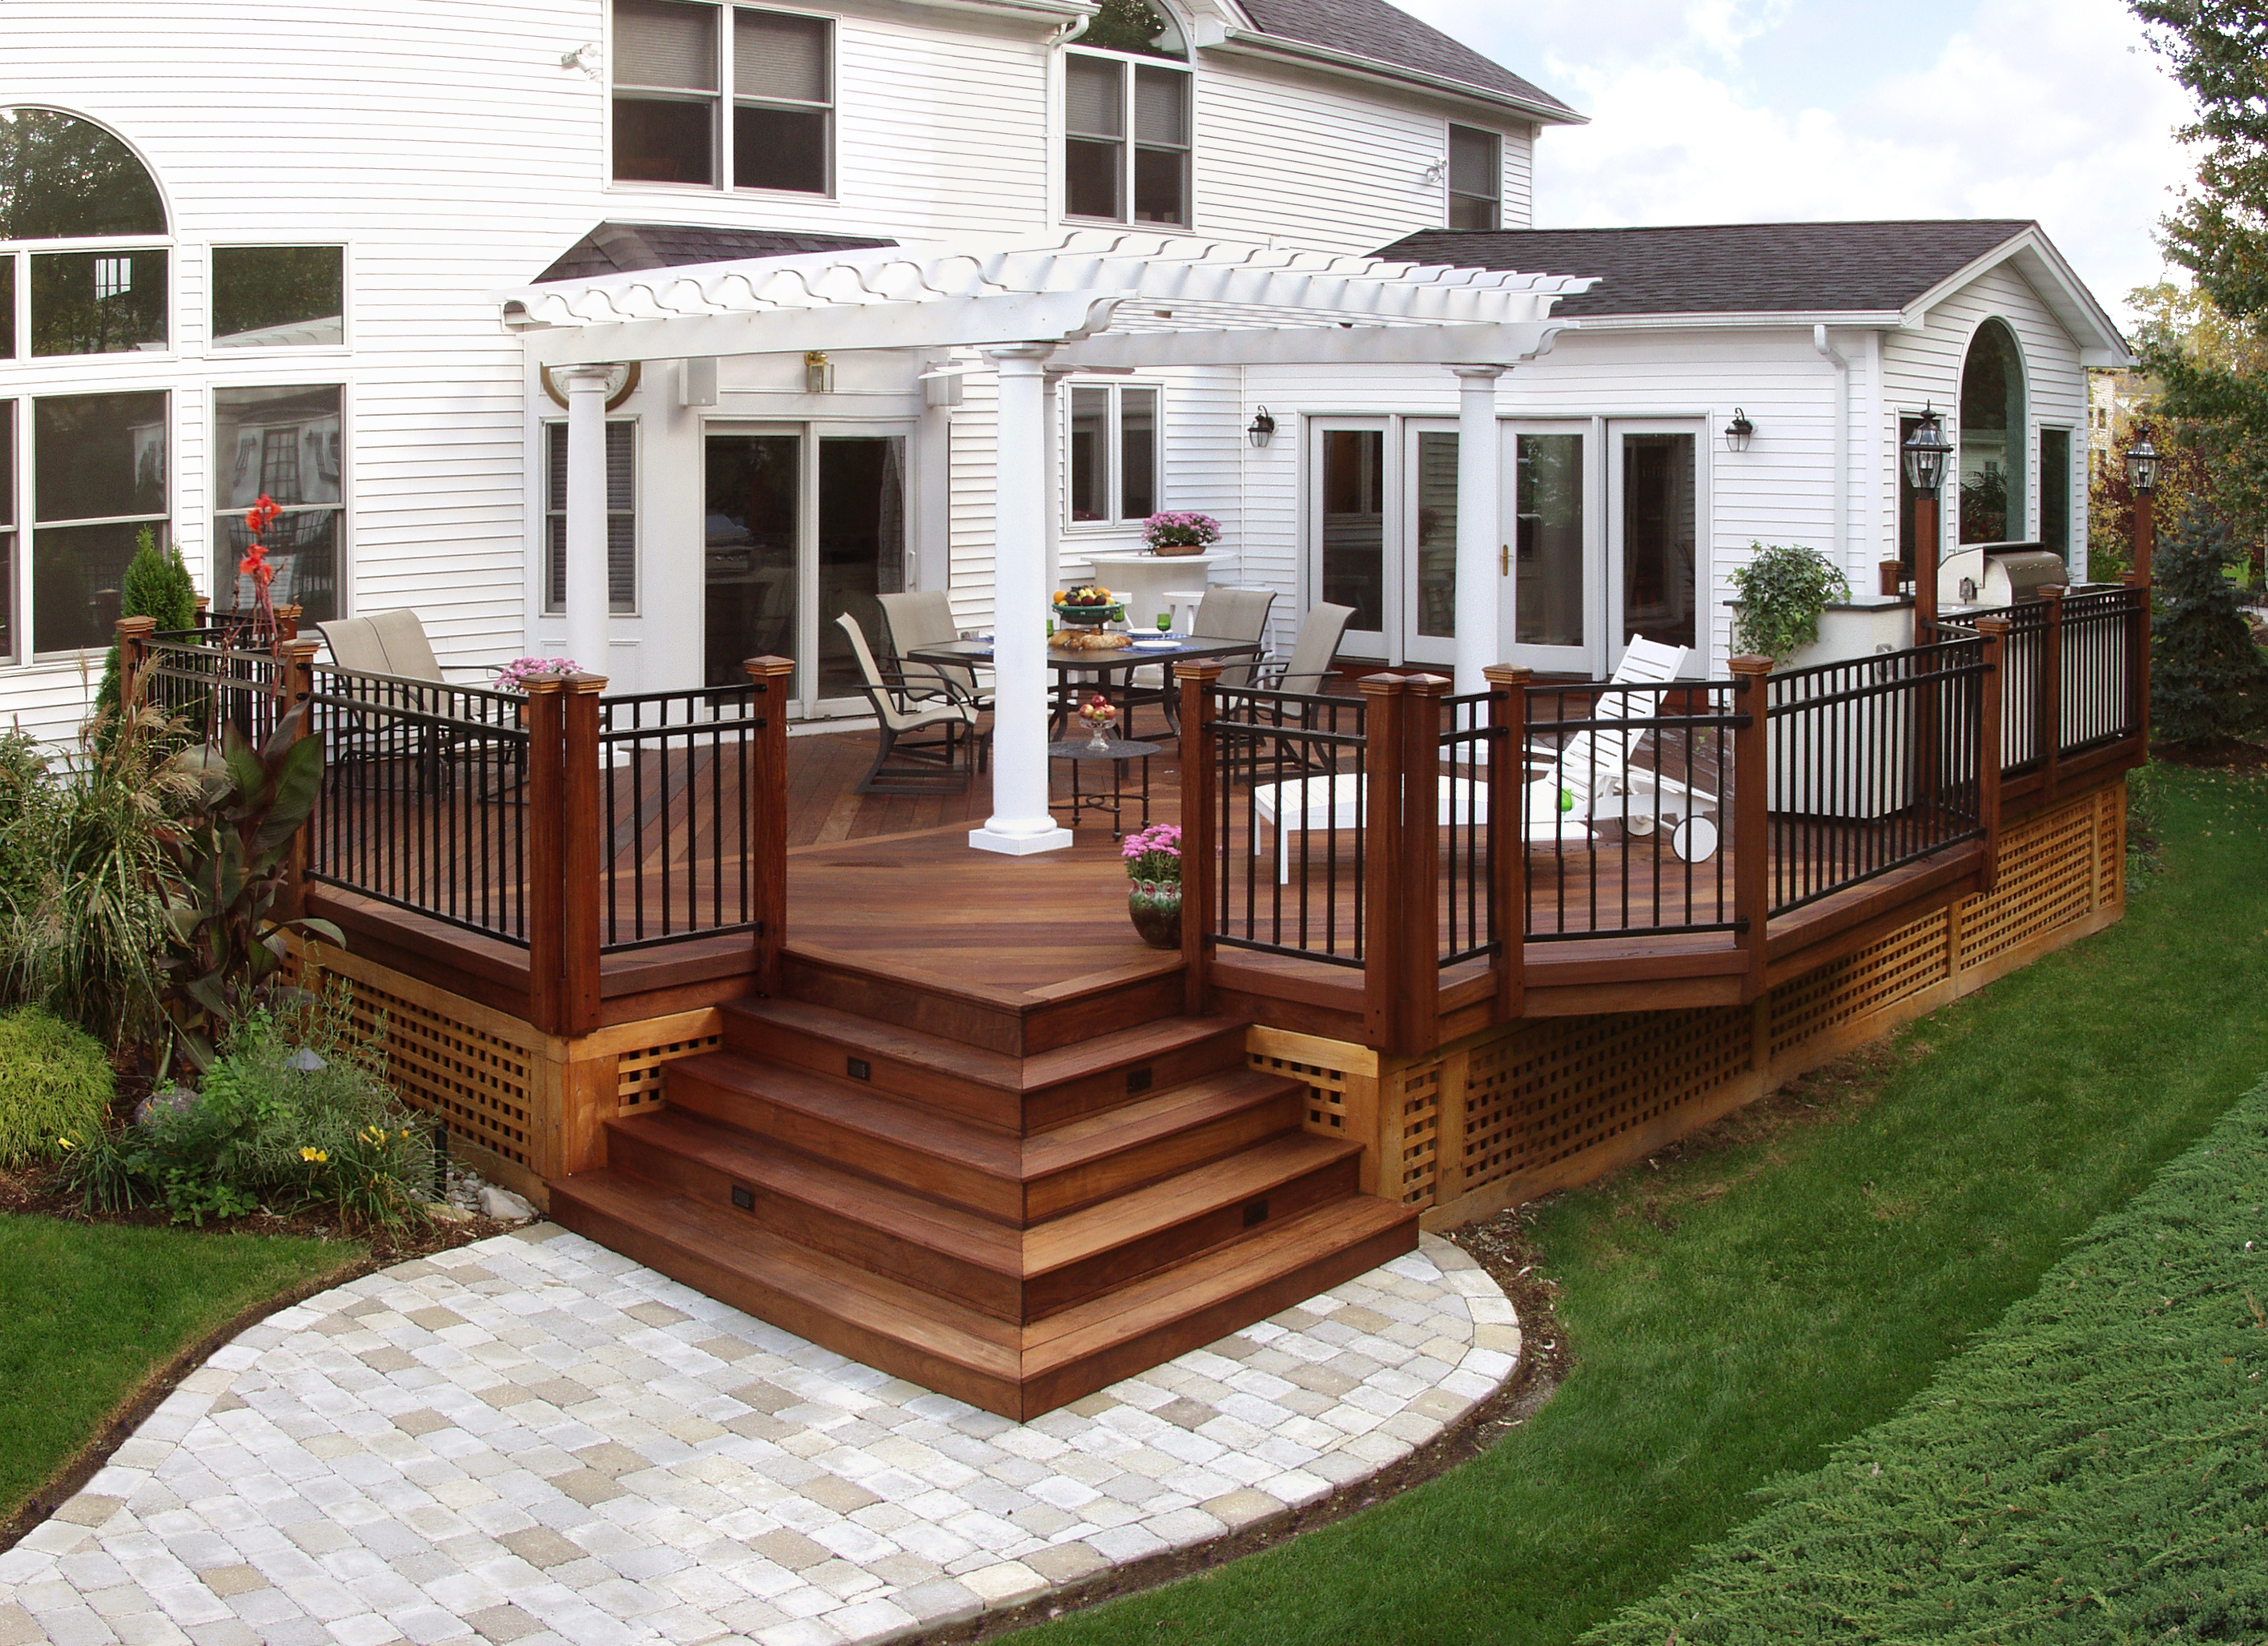 Free patio porch design ideas plans pictures pictures Wood deck designs free